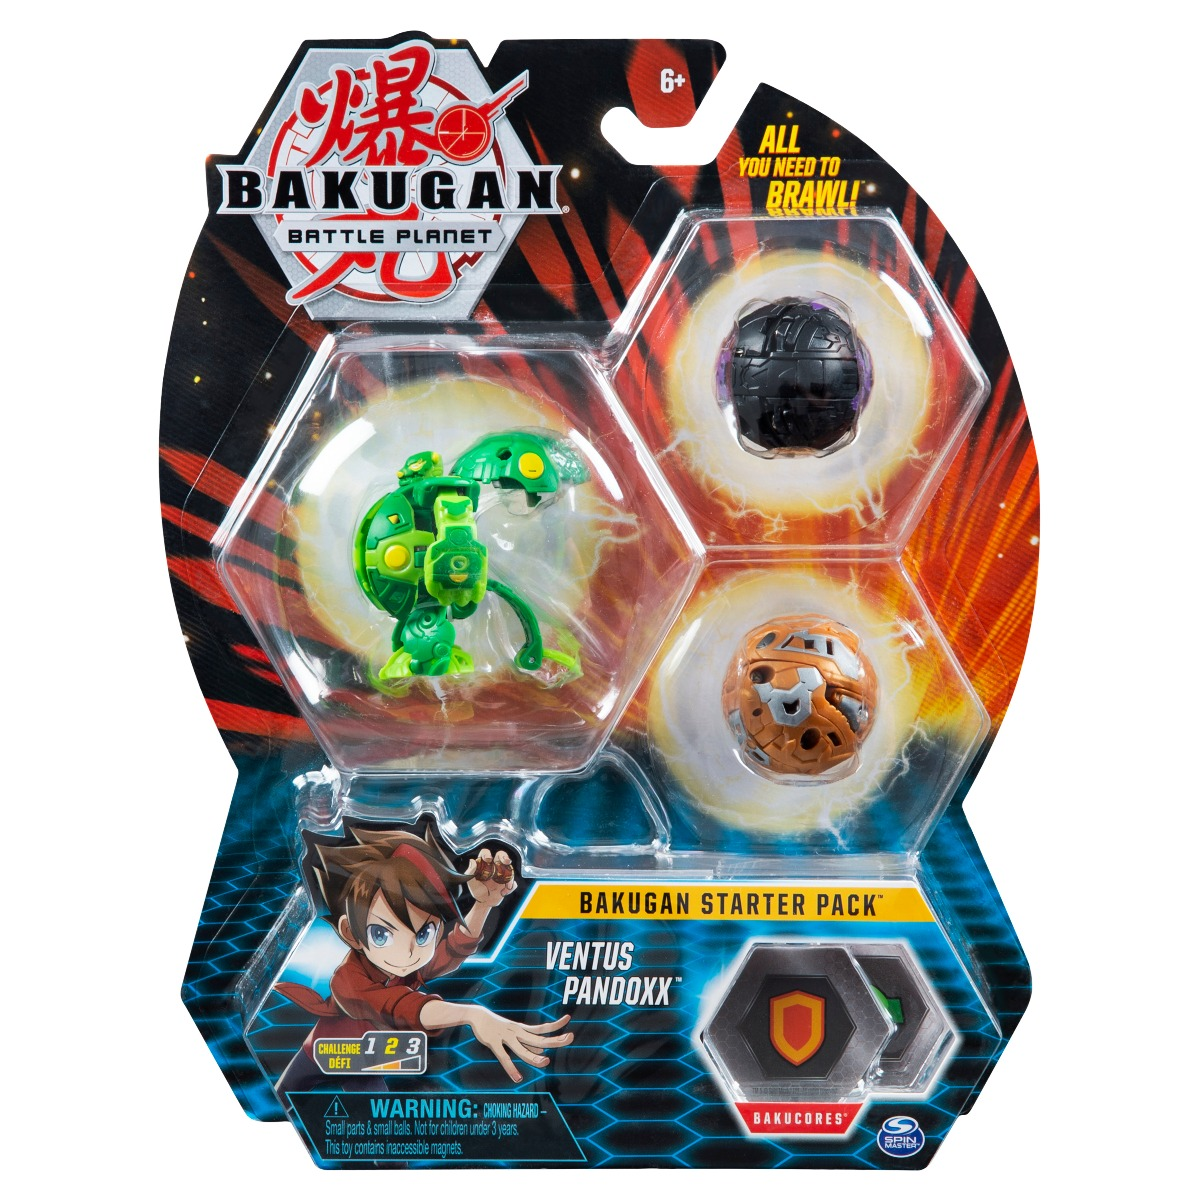 Set Bakugan Battle Planet Starter Pack, Ventus Pandoxx, 20119858